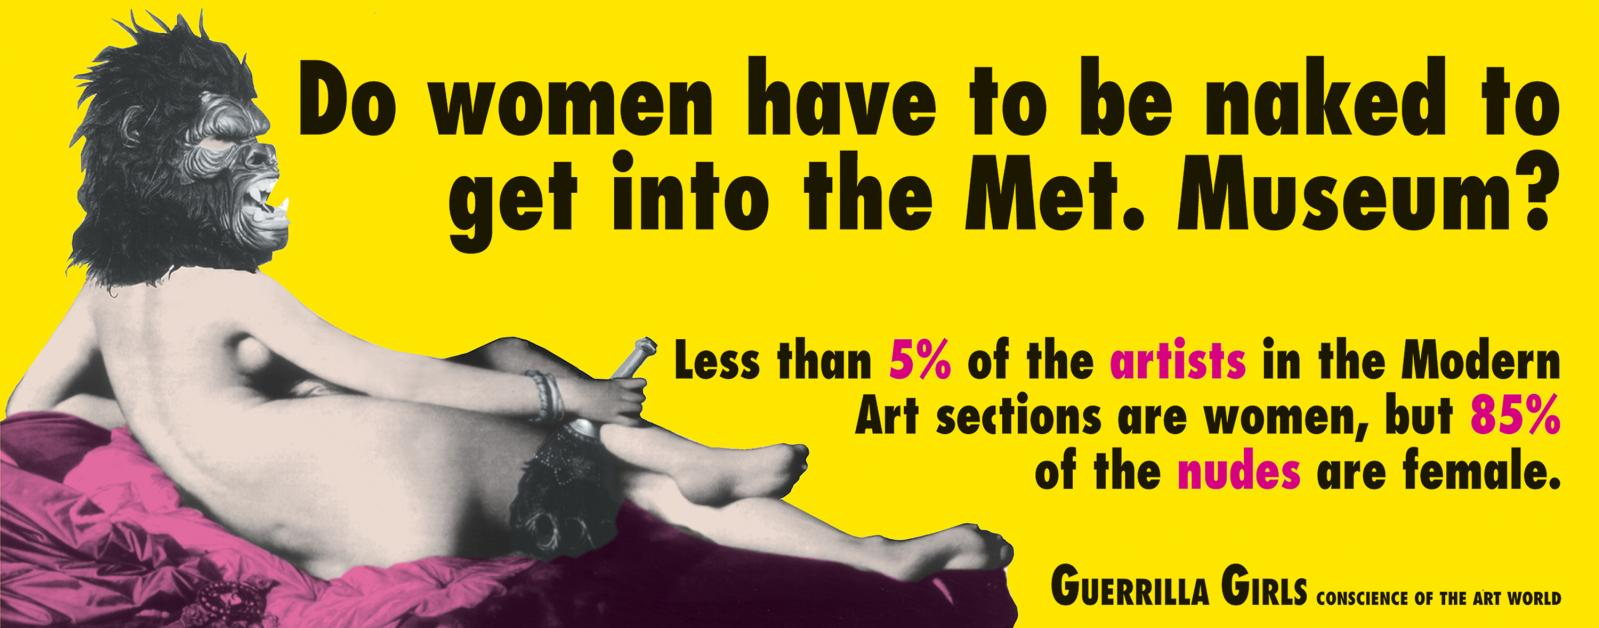 The Guerrilla Girls, Do Women Have To Be Naked To Get Into The Met Museum?,1989, affiche, 30,3x65,6cm. © The Guerrilla Girls